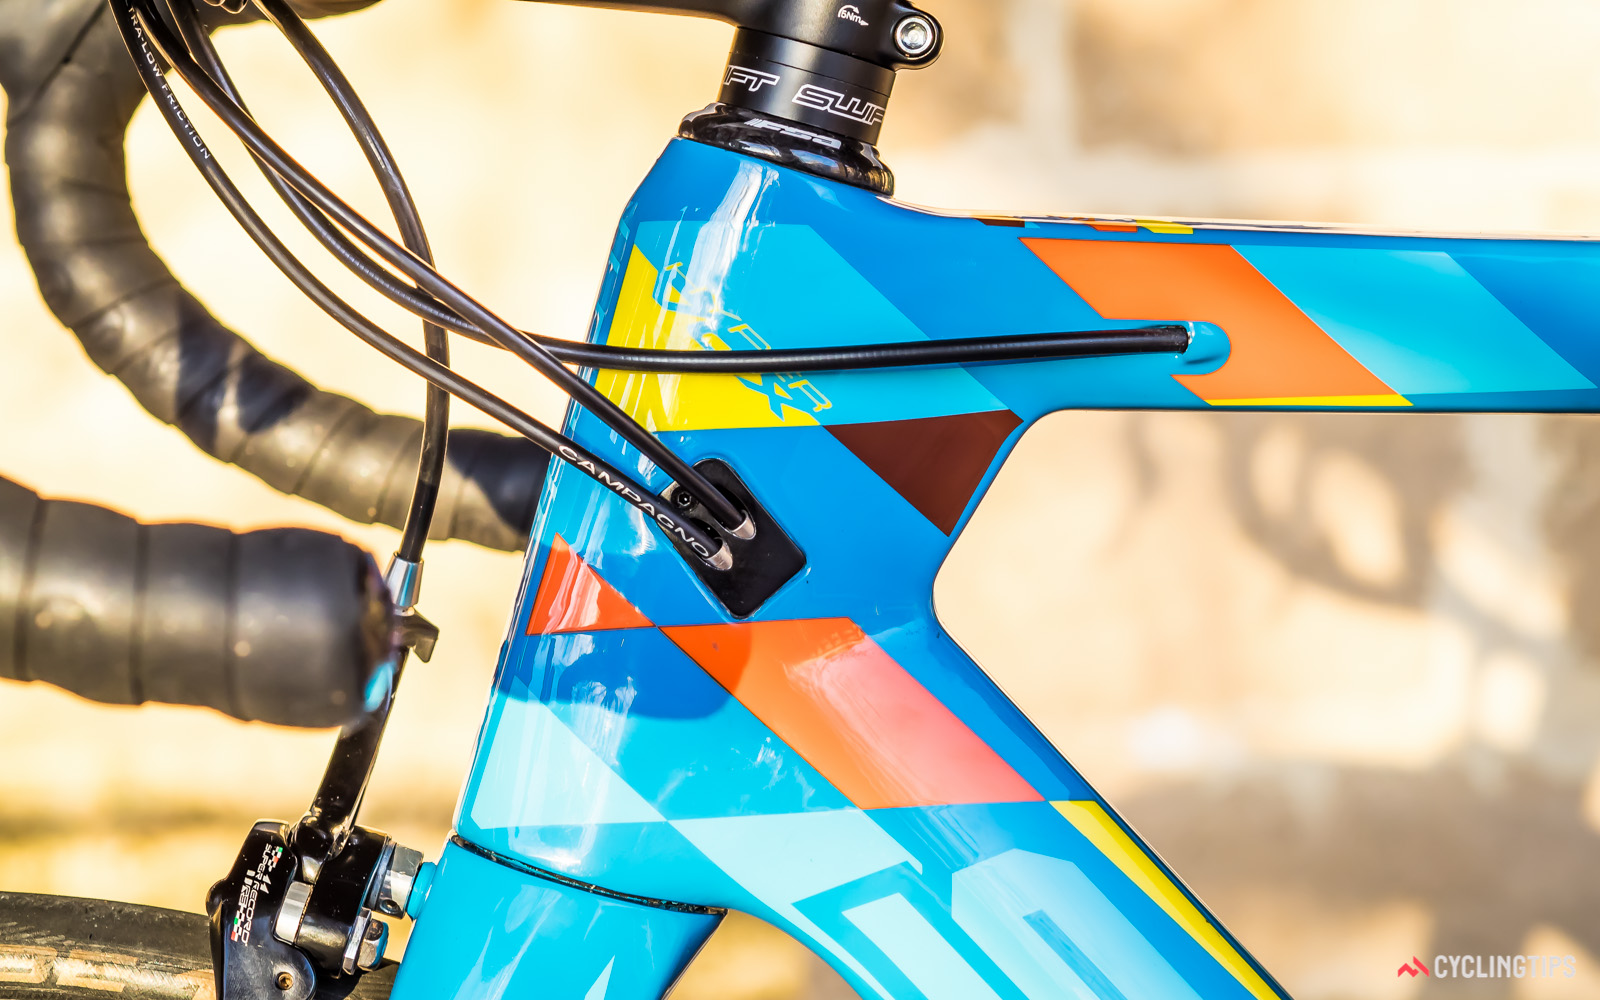 Both derailleur cables enter the down tube on the left hand side of the bike.